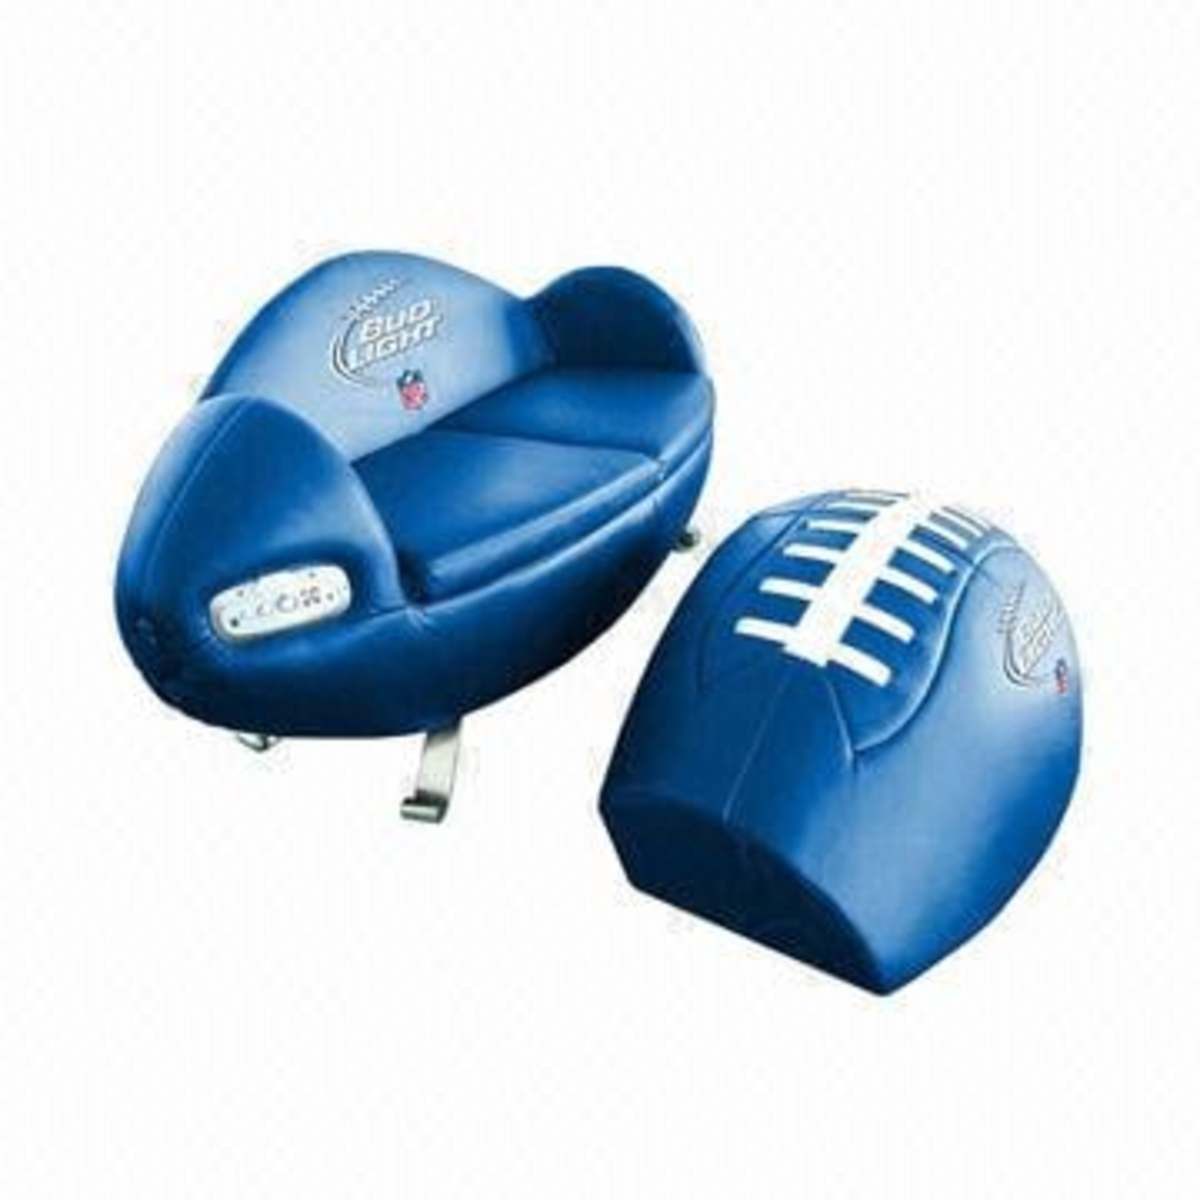 Football Fan Couch with Speakers and Matching Foot Stool in blue Super Bowl 47 co-branded with Bud Light